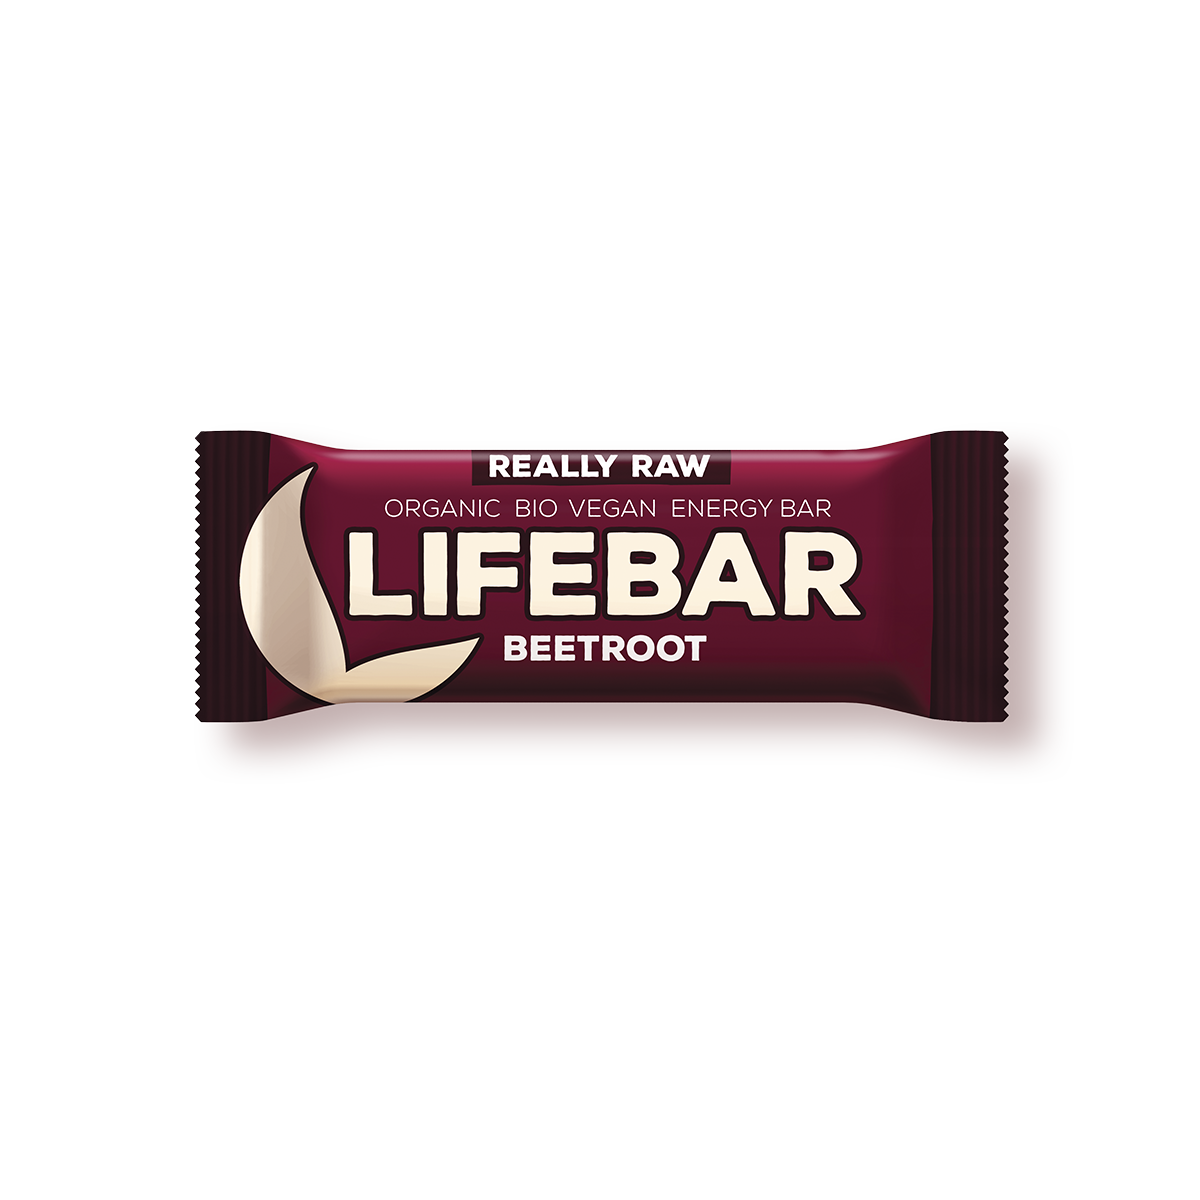 http://contao.lifefood.eu/tl_files/data/en/NEW products/lifebars/lifebars/beetroot/raw-energy-bar-beetroot-lifebar.png